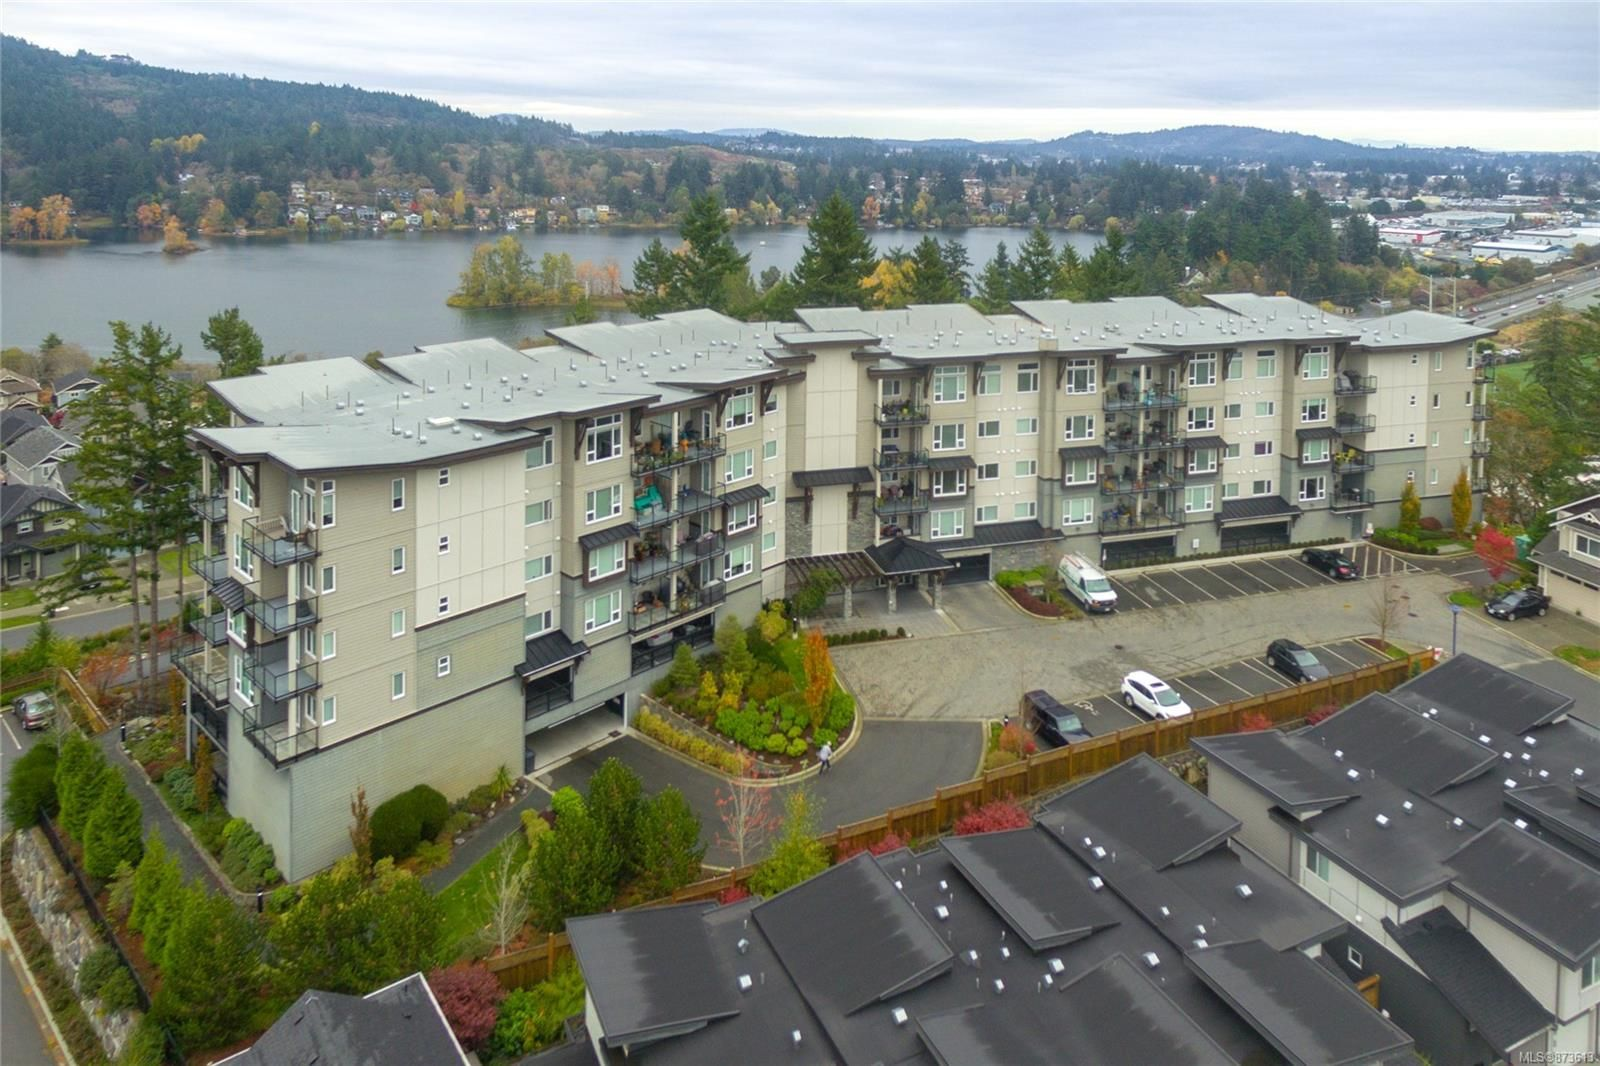 Main Photo: 101 1145 Sikorsky Rd in : La Westhills Condo for sale (Langford)  : MLS®# 873613